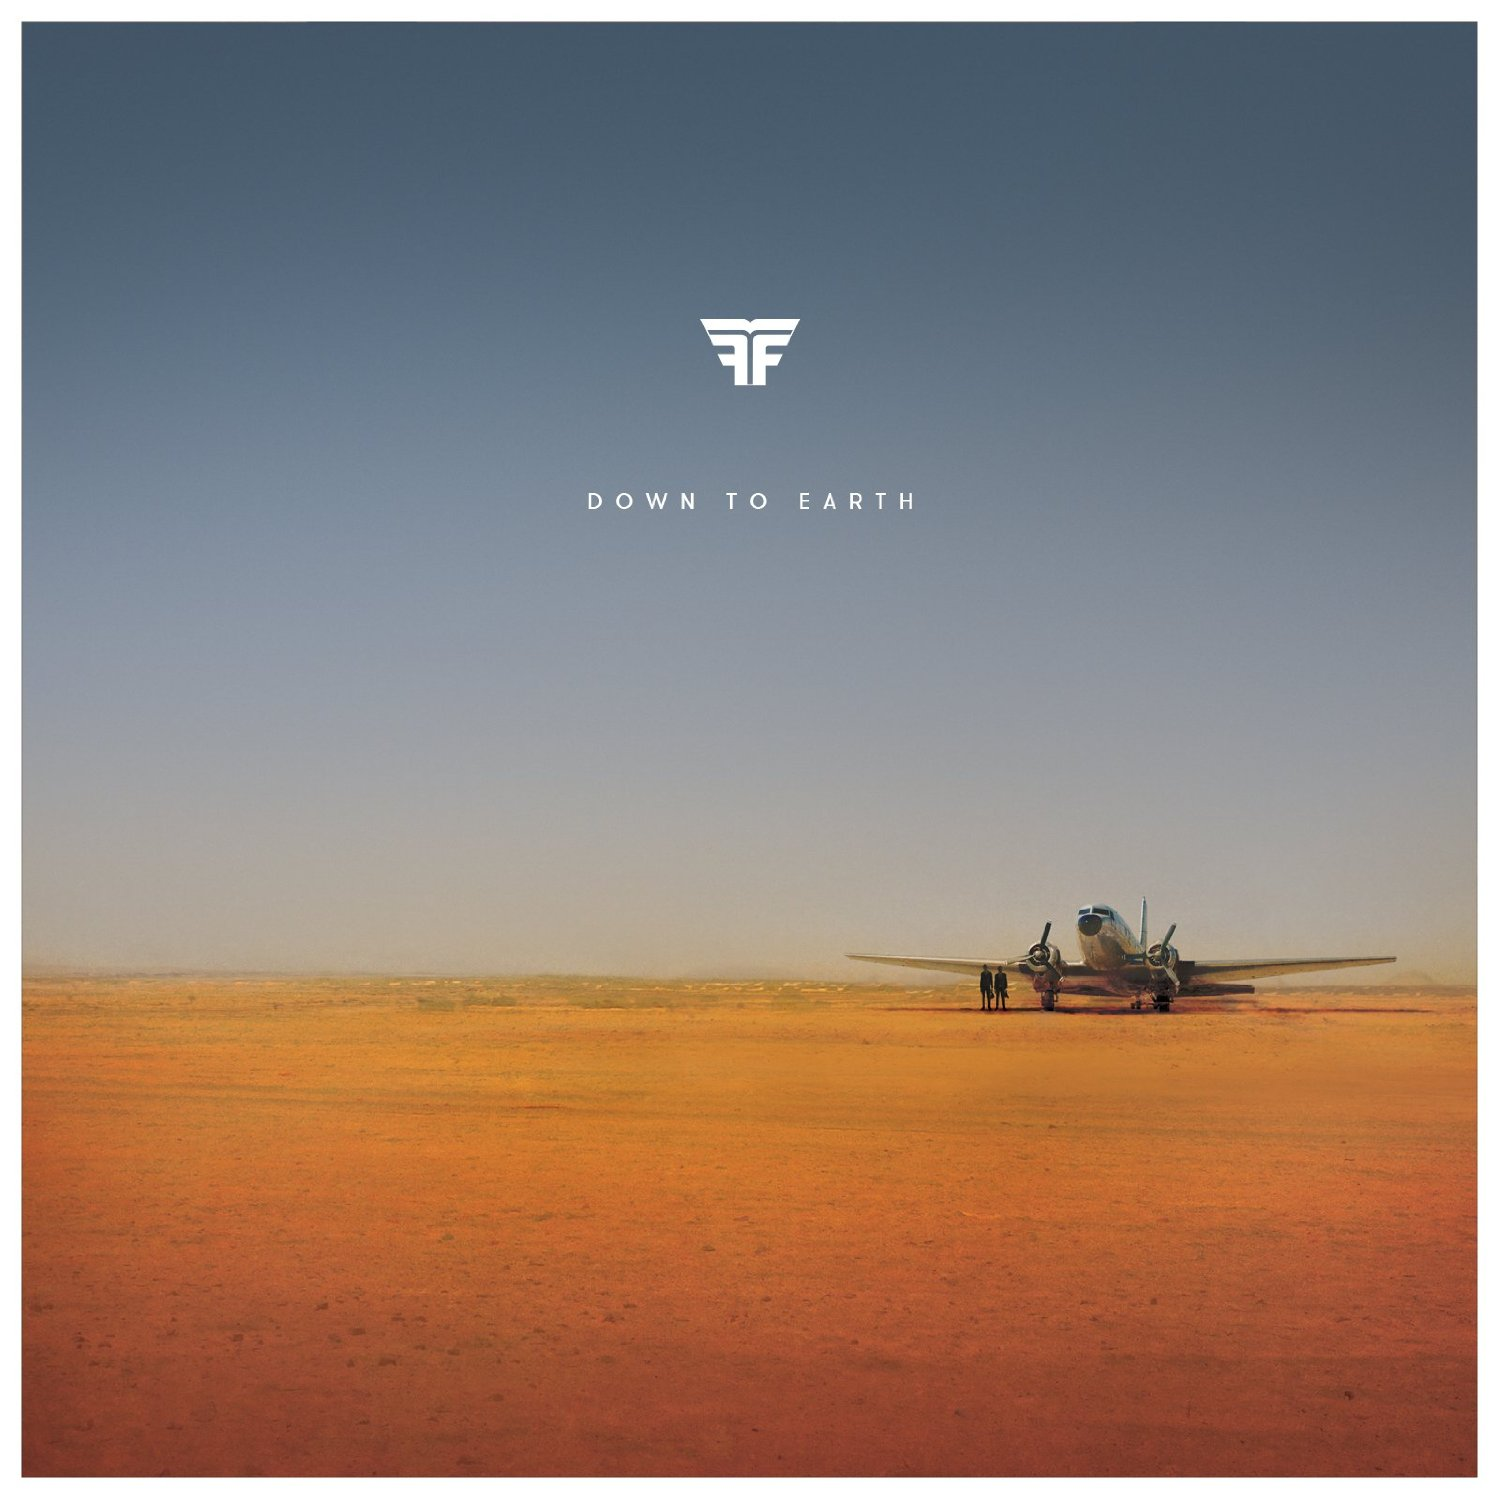 추천 앨범: Flight Facilities - Down to Earth